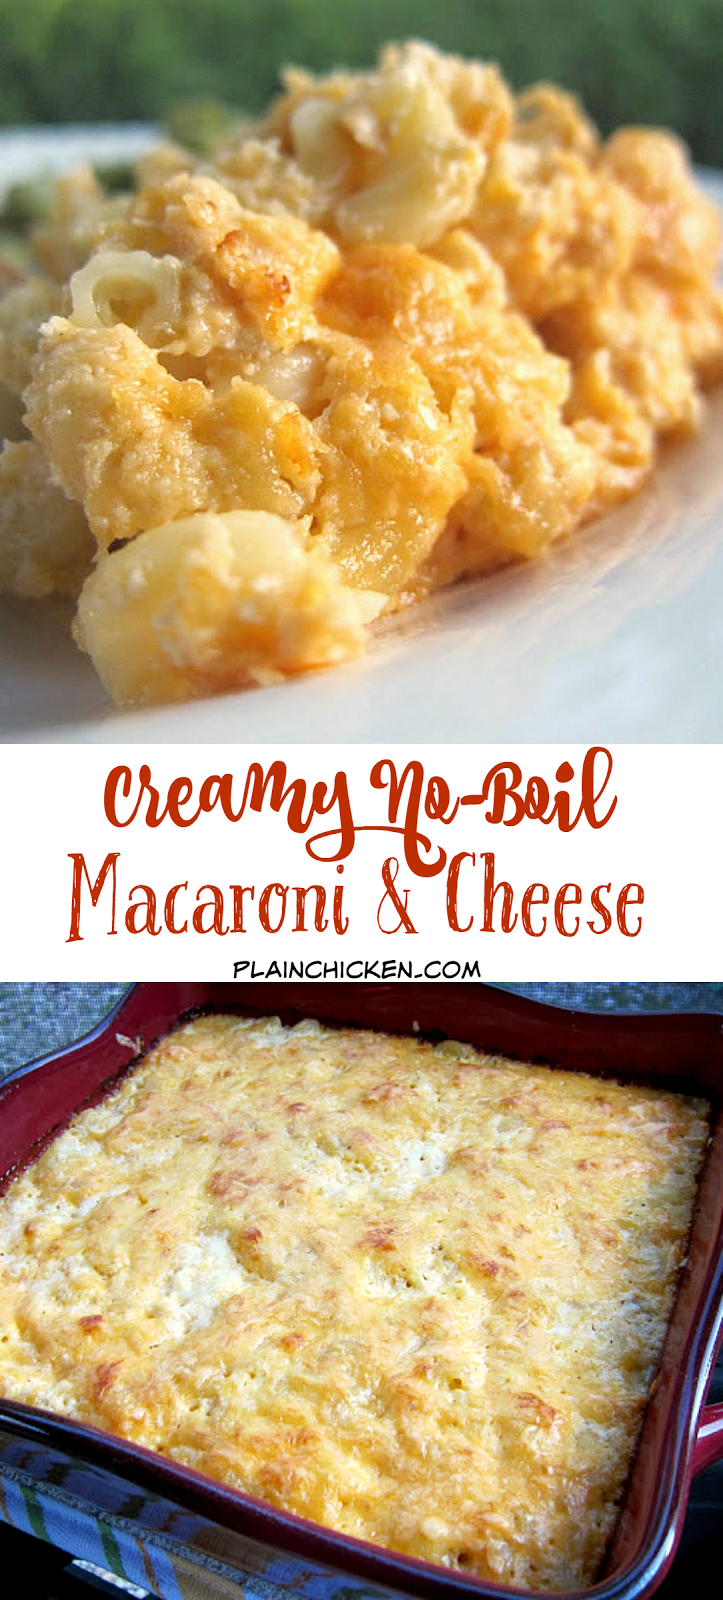 Lovely Creamy No Boil Macaroni And Cheese   Cottage Cheese, Milk, Dijon Mustard,